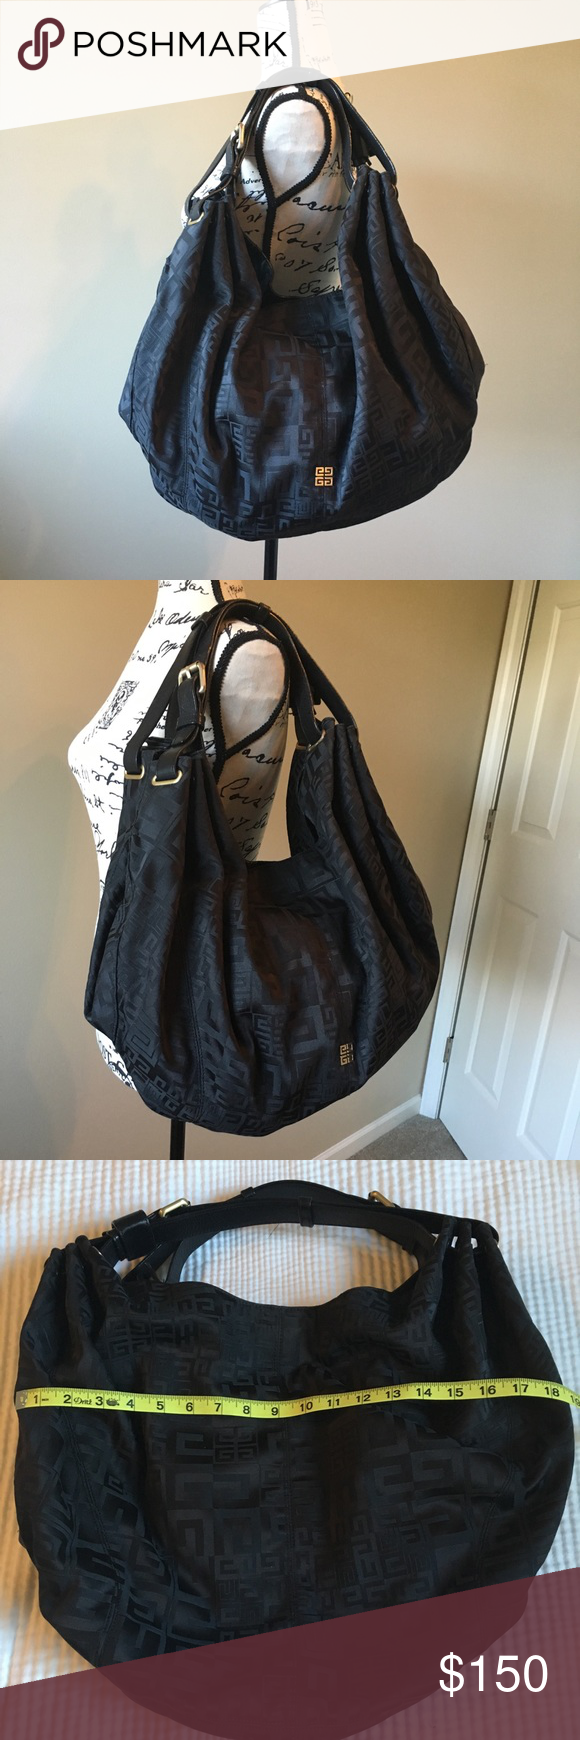 e416729be8 Givenchy large Hobo Bag This beautiful oversized canvas ...